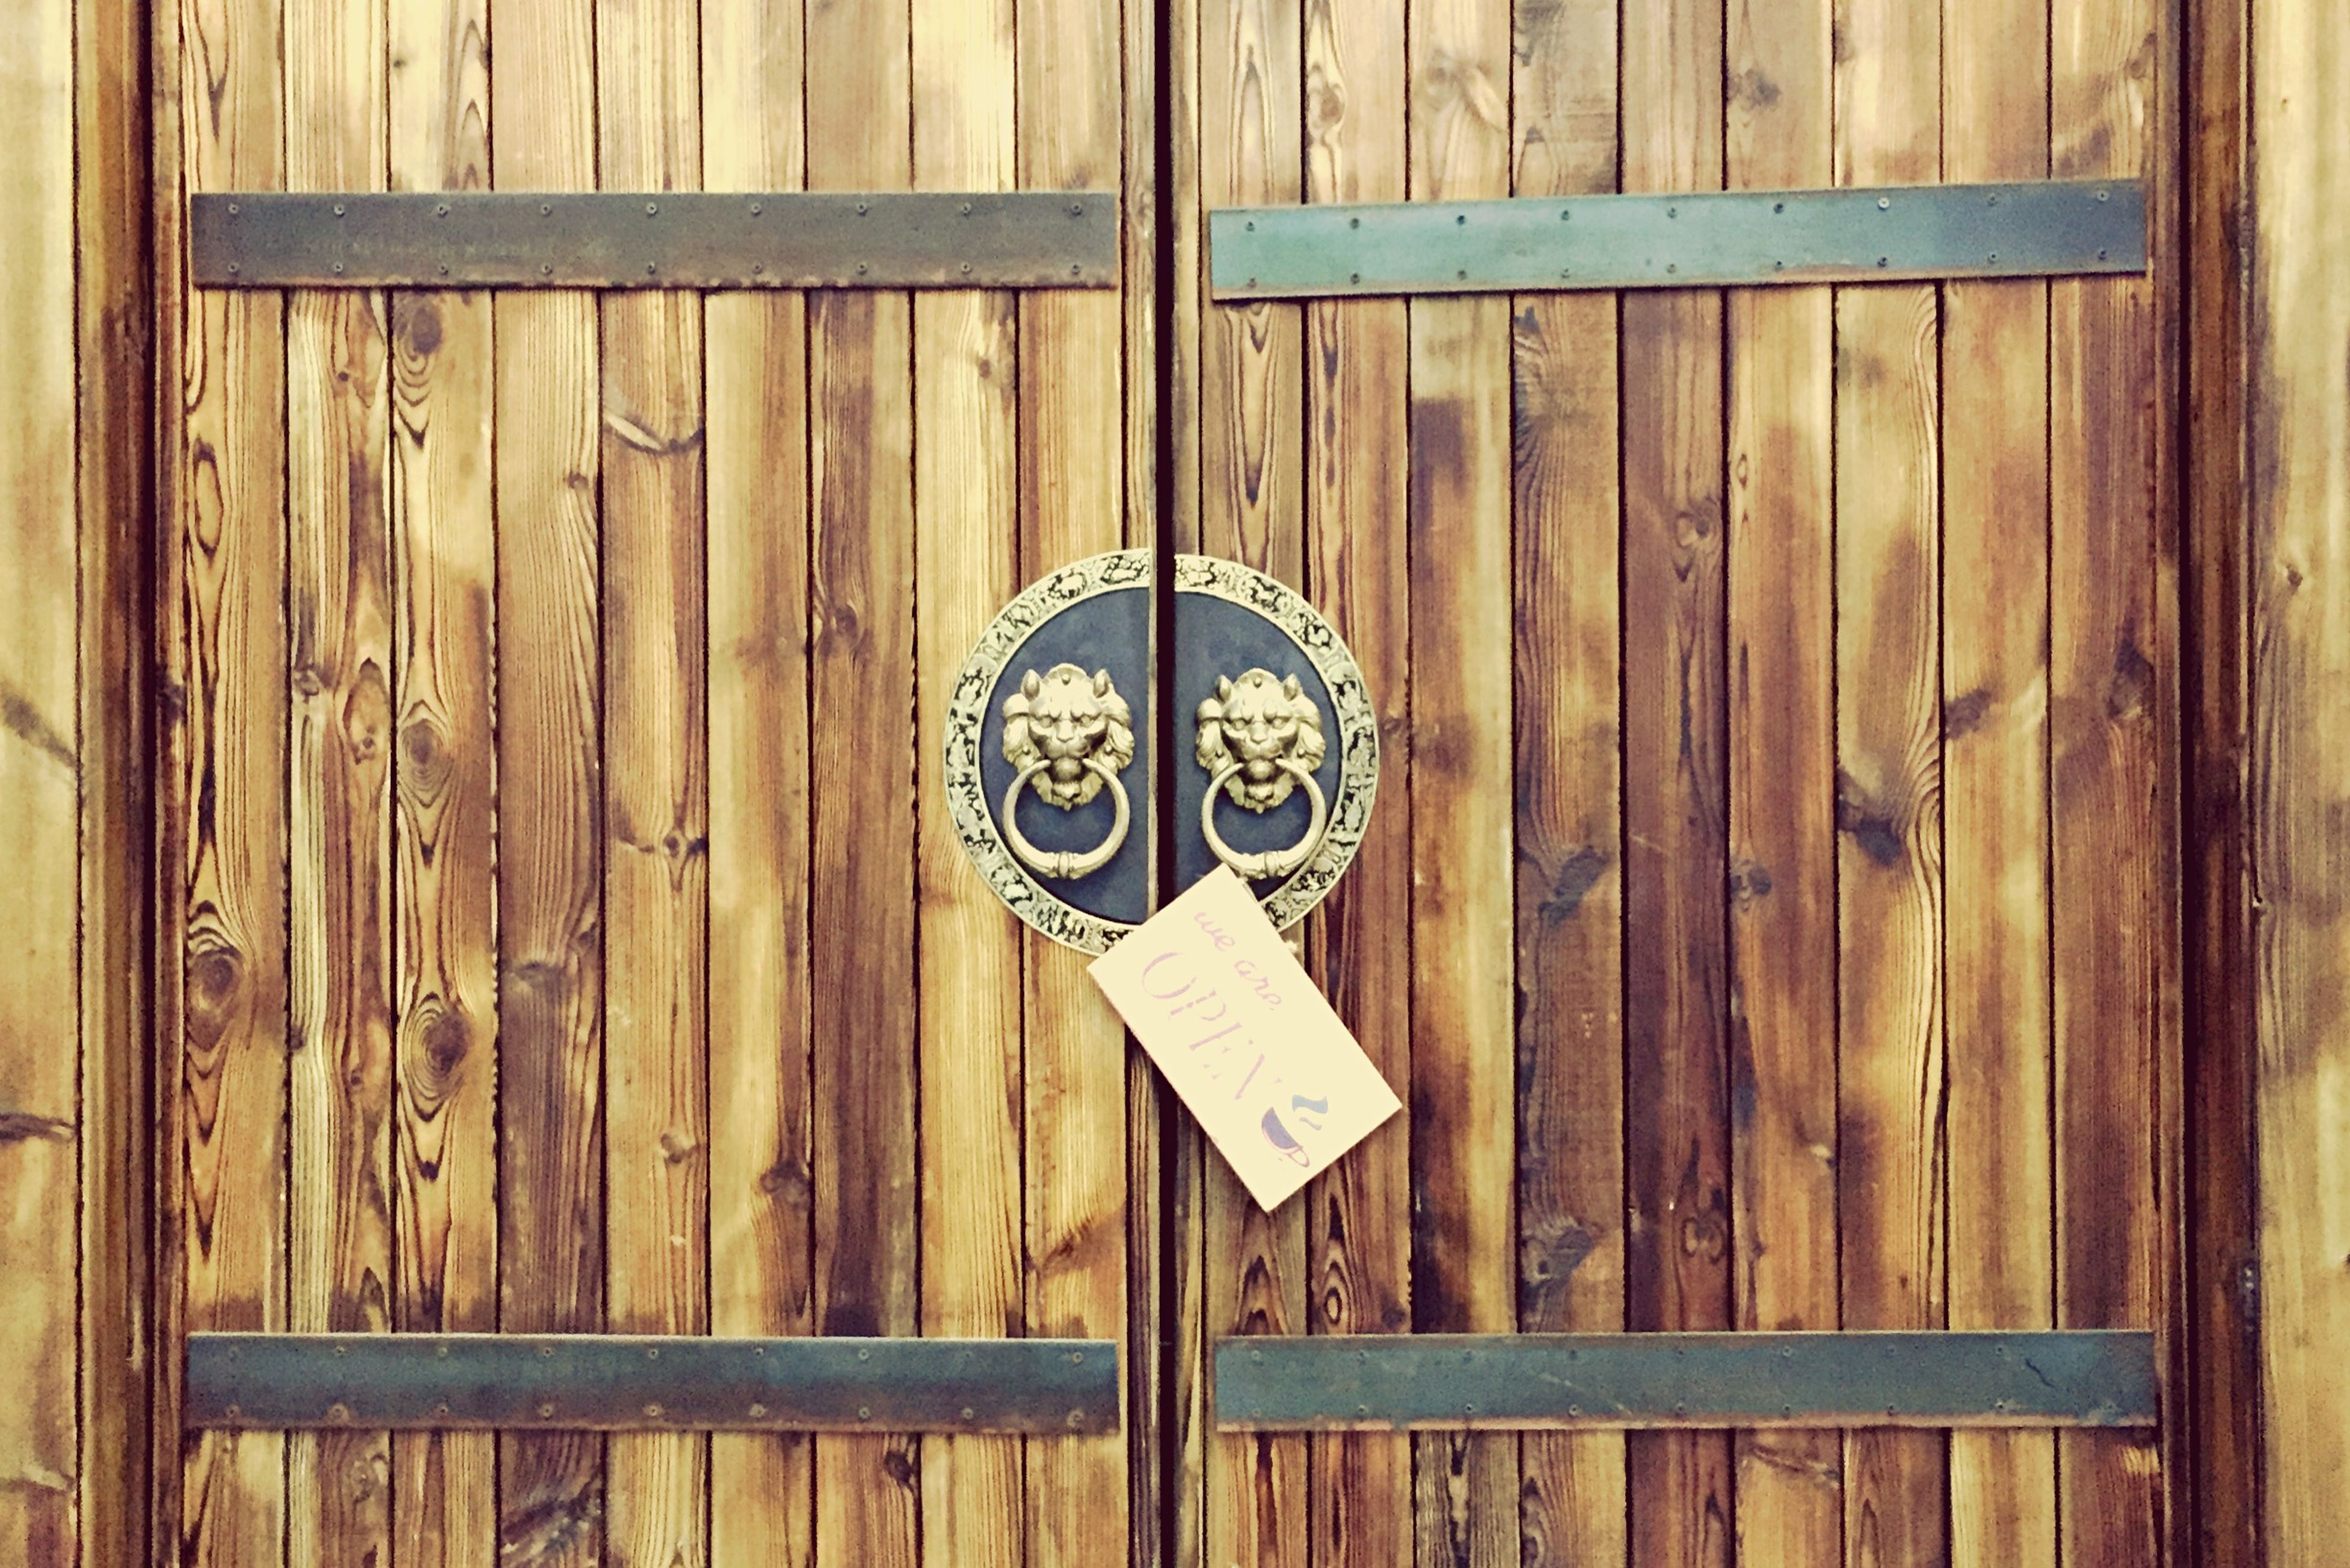 wood - material, wooden, indoors, door, old-fashioned, wood, close-up, metal, still life, old, wall - building feature, closed, no people, hanging, safety, table, antique, full frame, communication, day